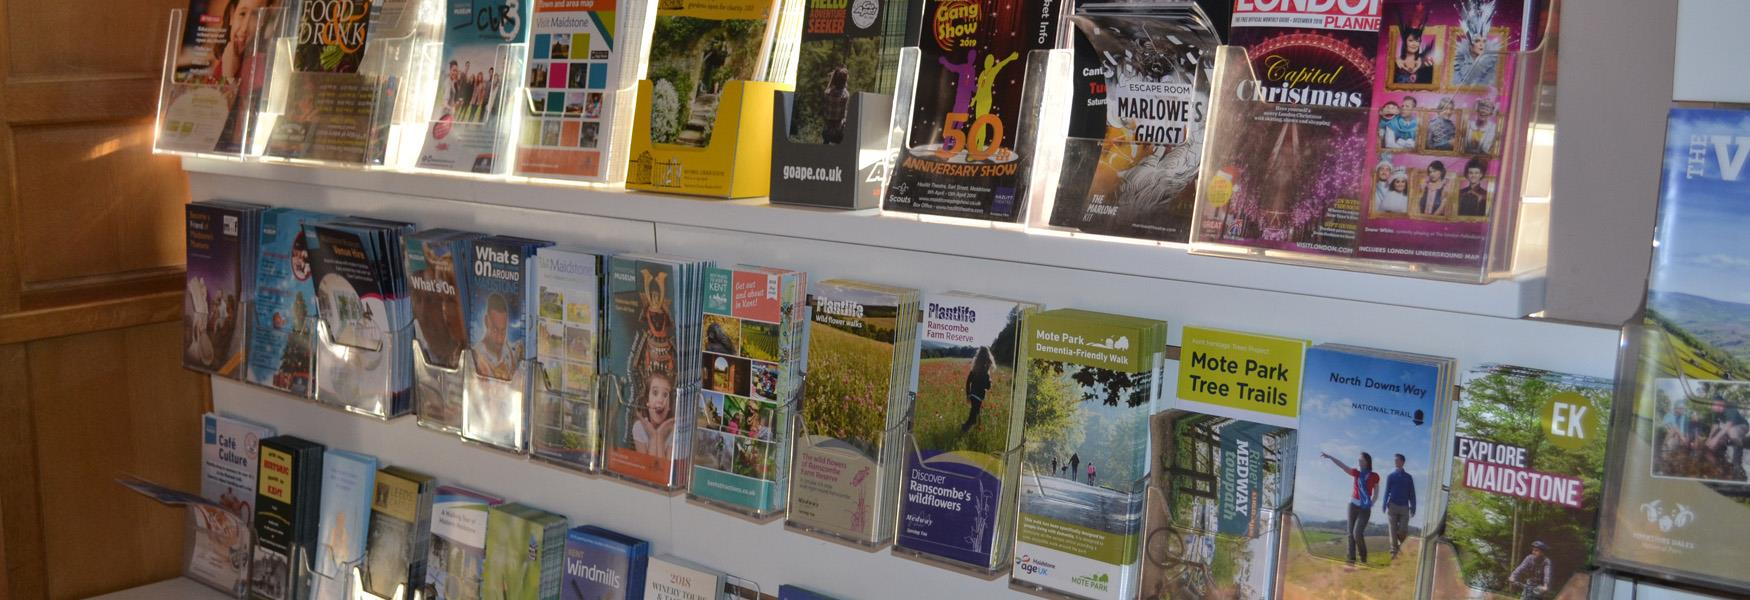 Leaflets at the Tourist Information Centre